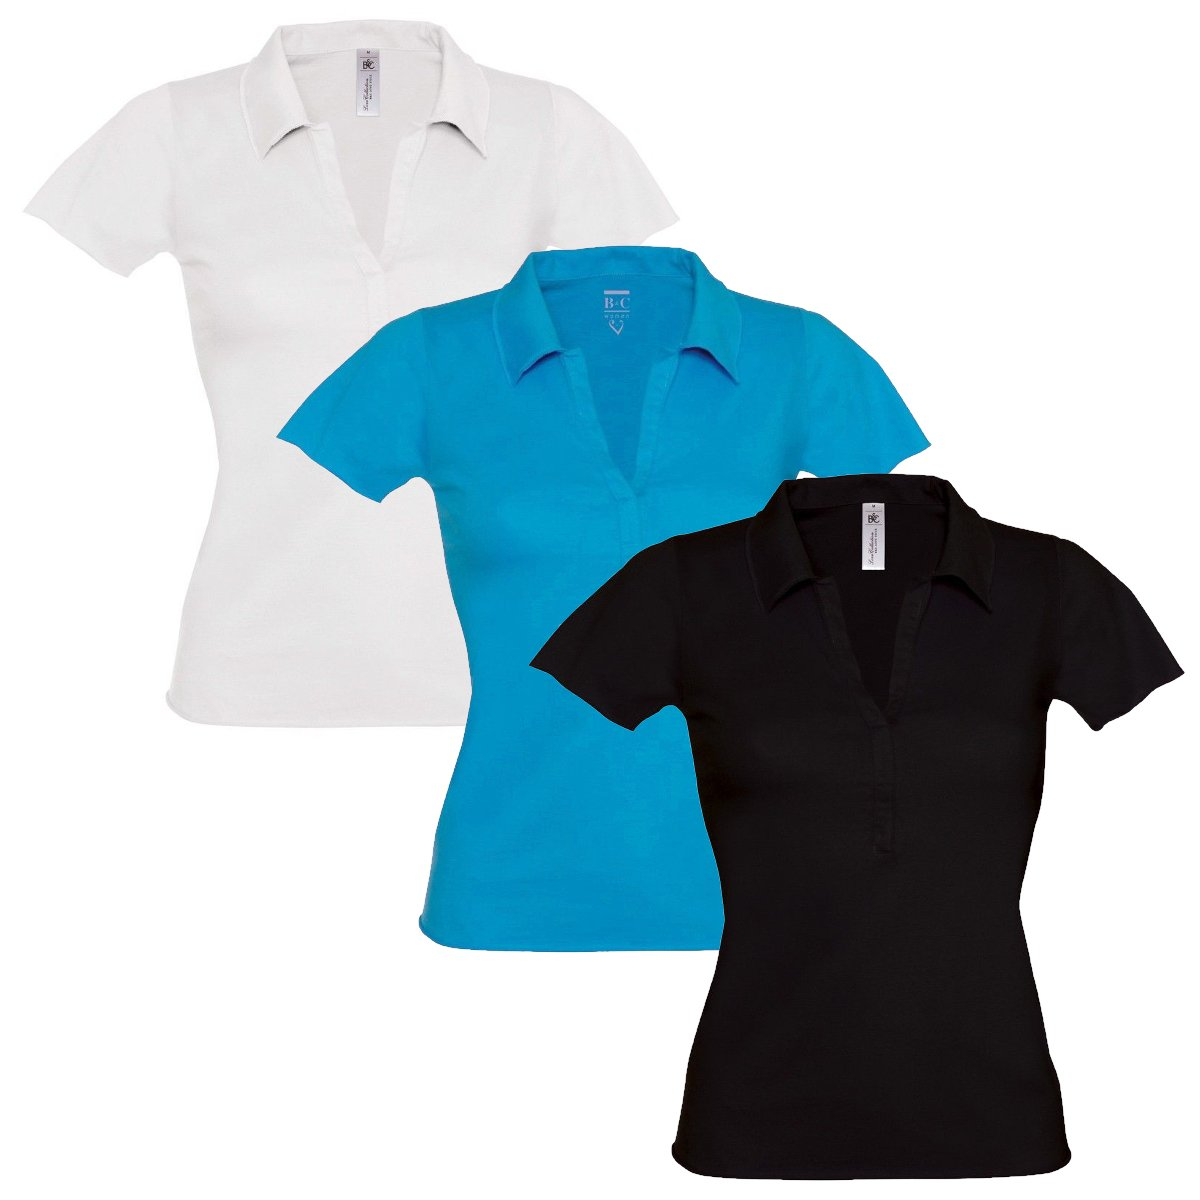 Womens Ladies Polo T Shirt V Neck Short Sleeve Top Open Collar Fitted Fashion UK BC-LOVESPICE